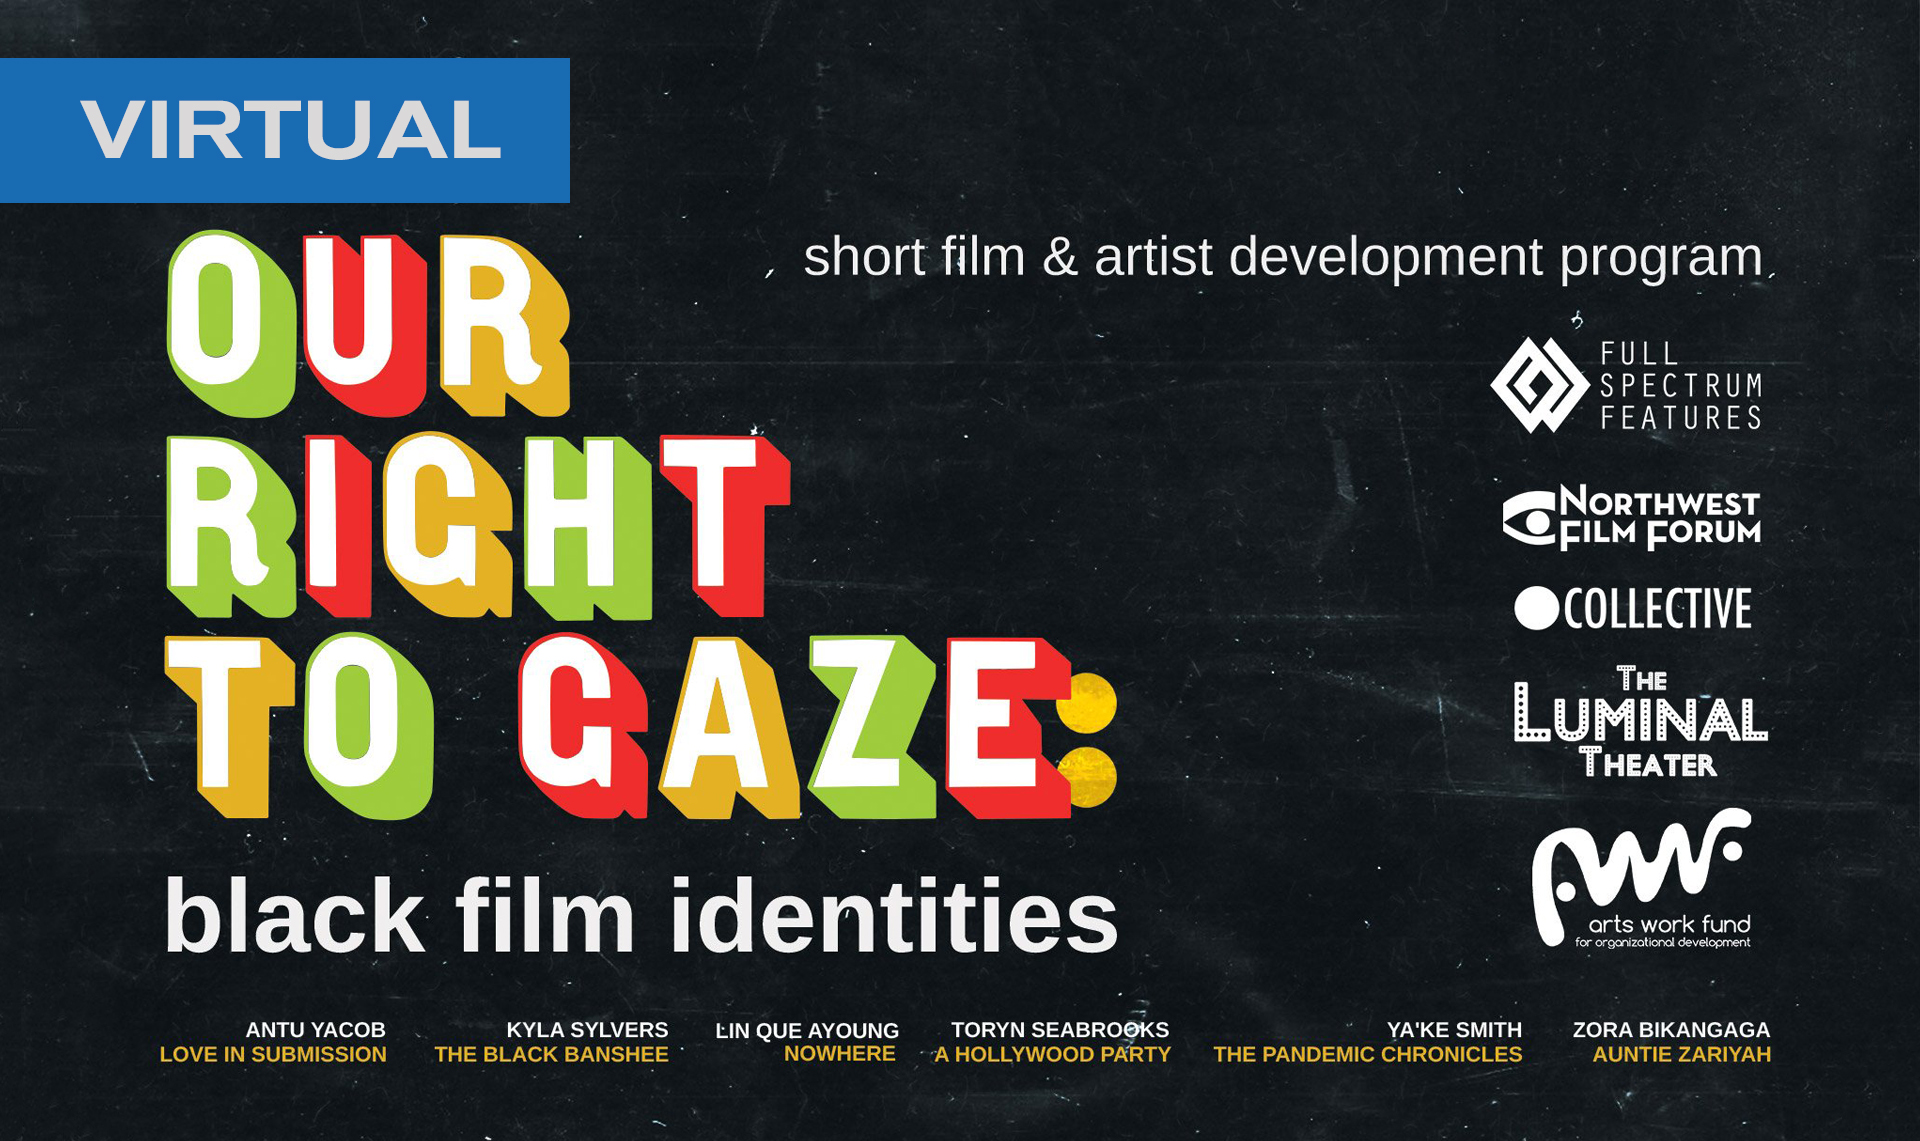 Virtual: Our Right To Gaze: Black Film Identities